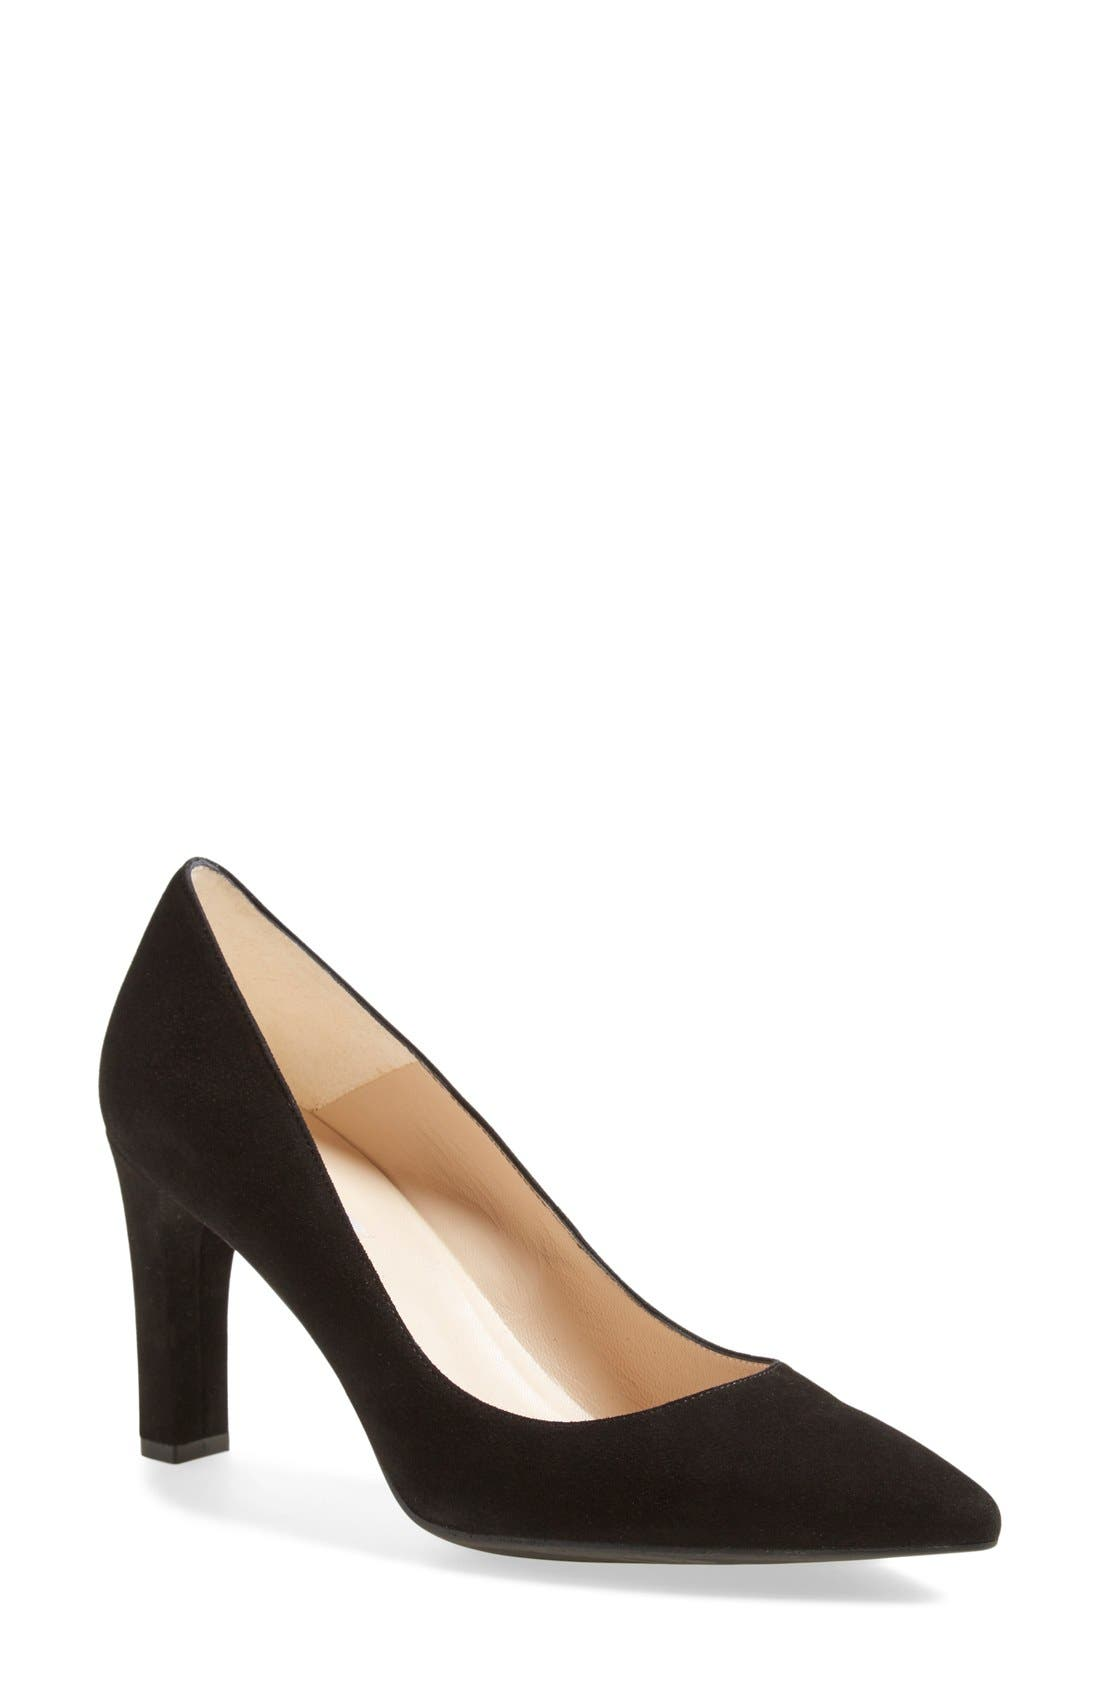 L.K. BENNETT 'Tess' Pointy Toe Pump